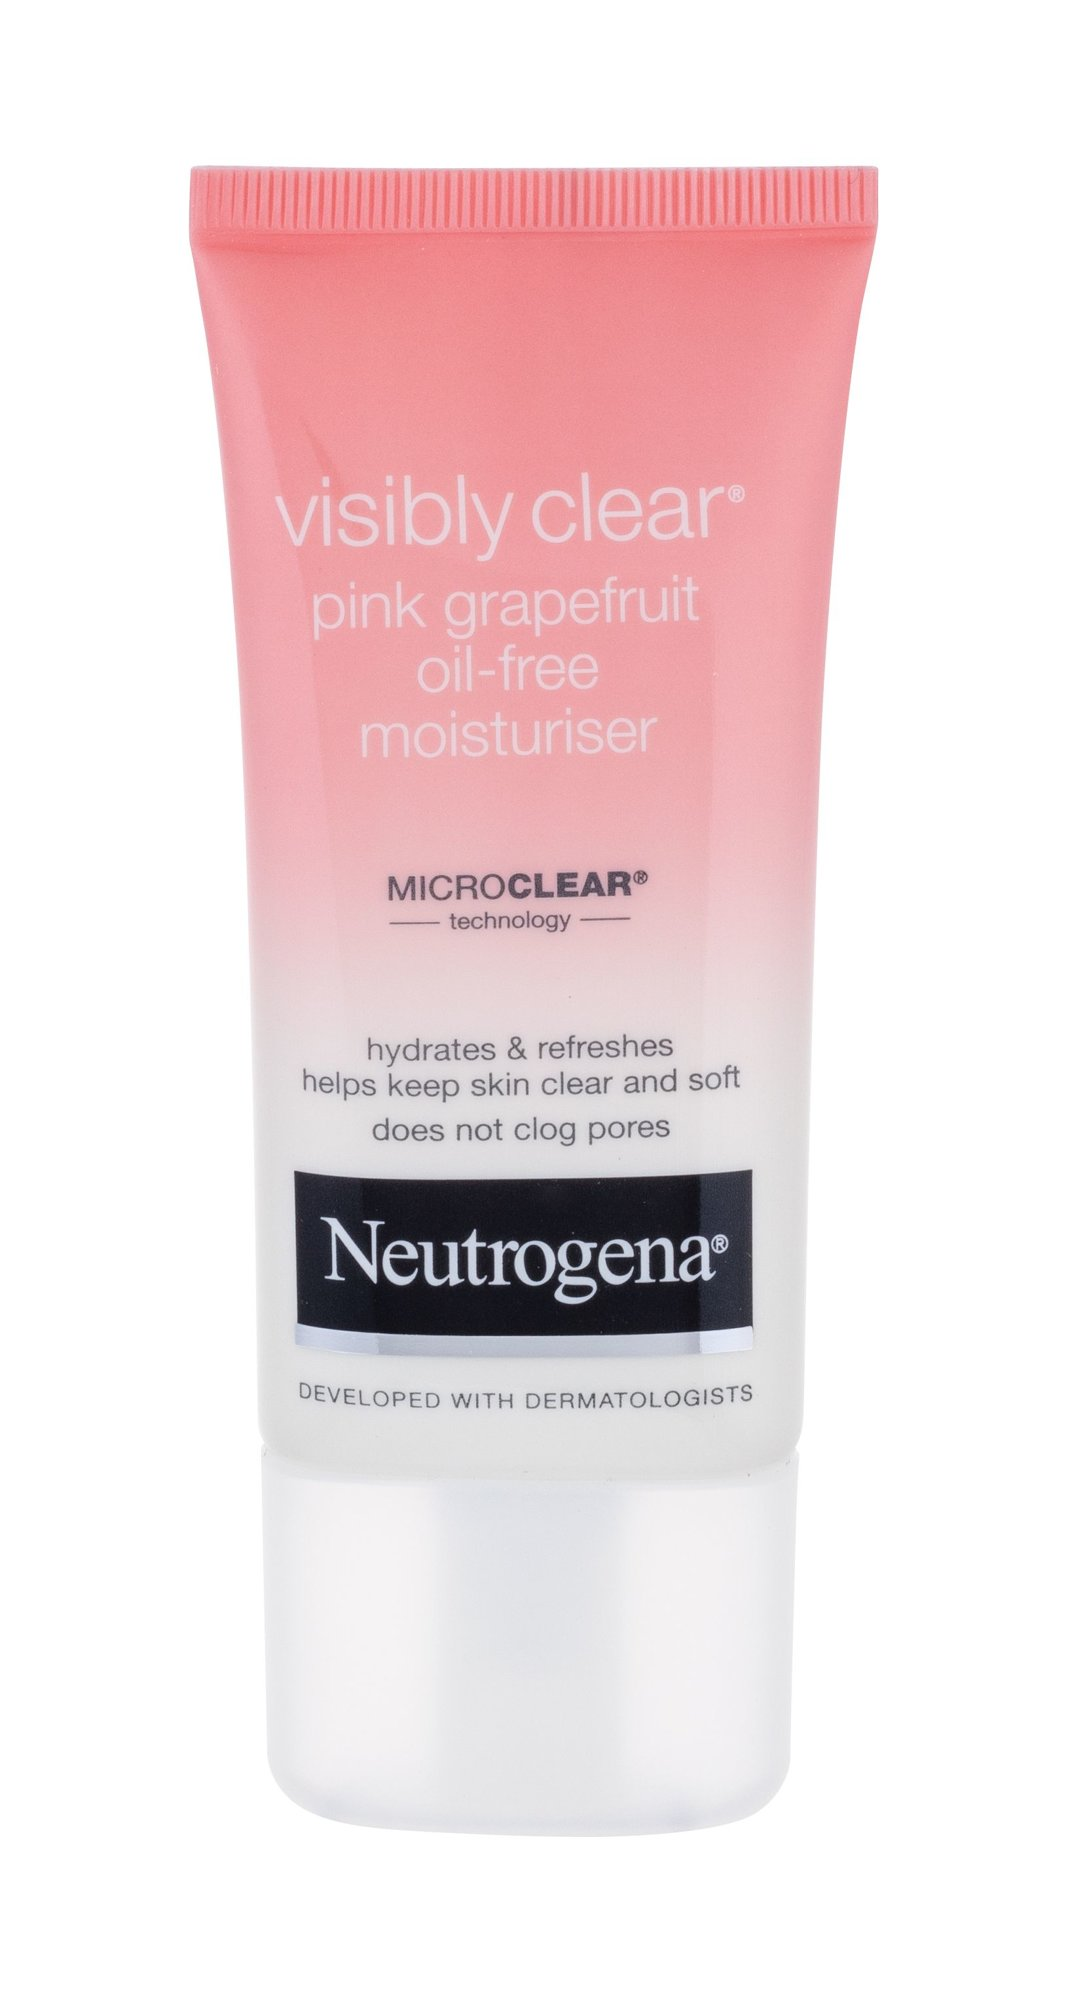 Neutrogena Visibly Clear Cosmetic 50ml  Pink Grapefruit